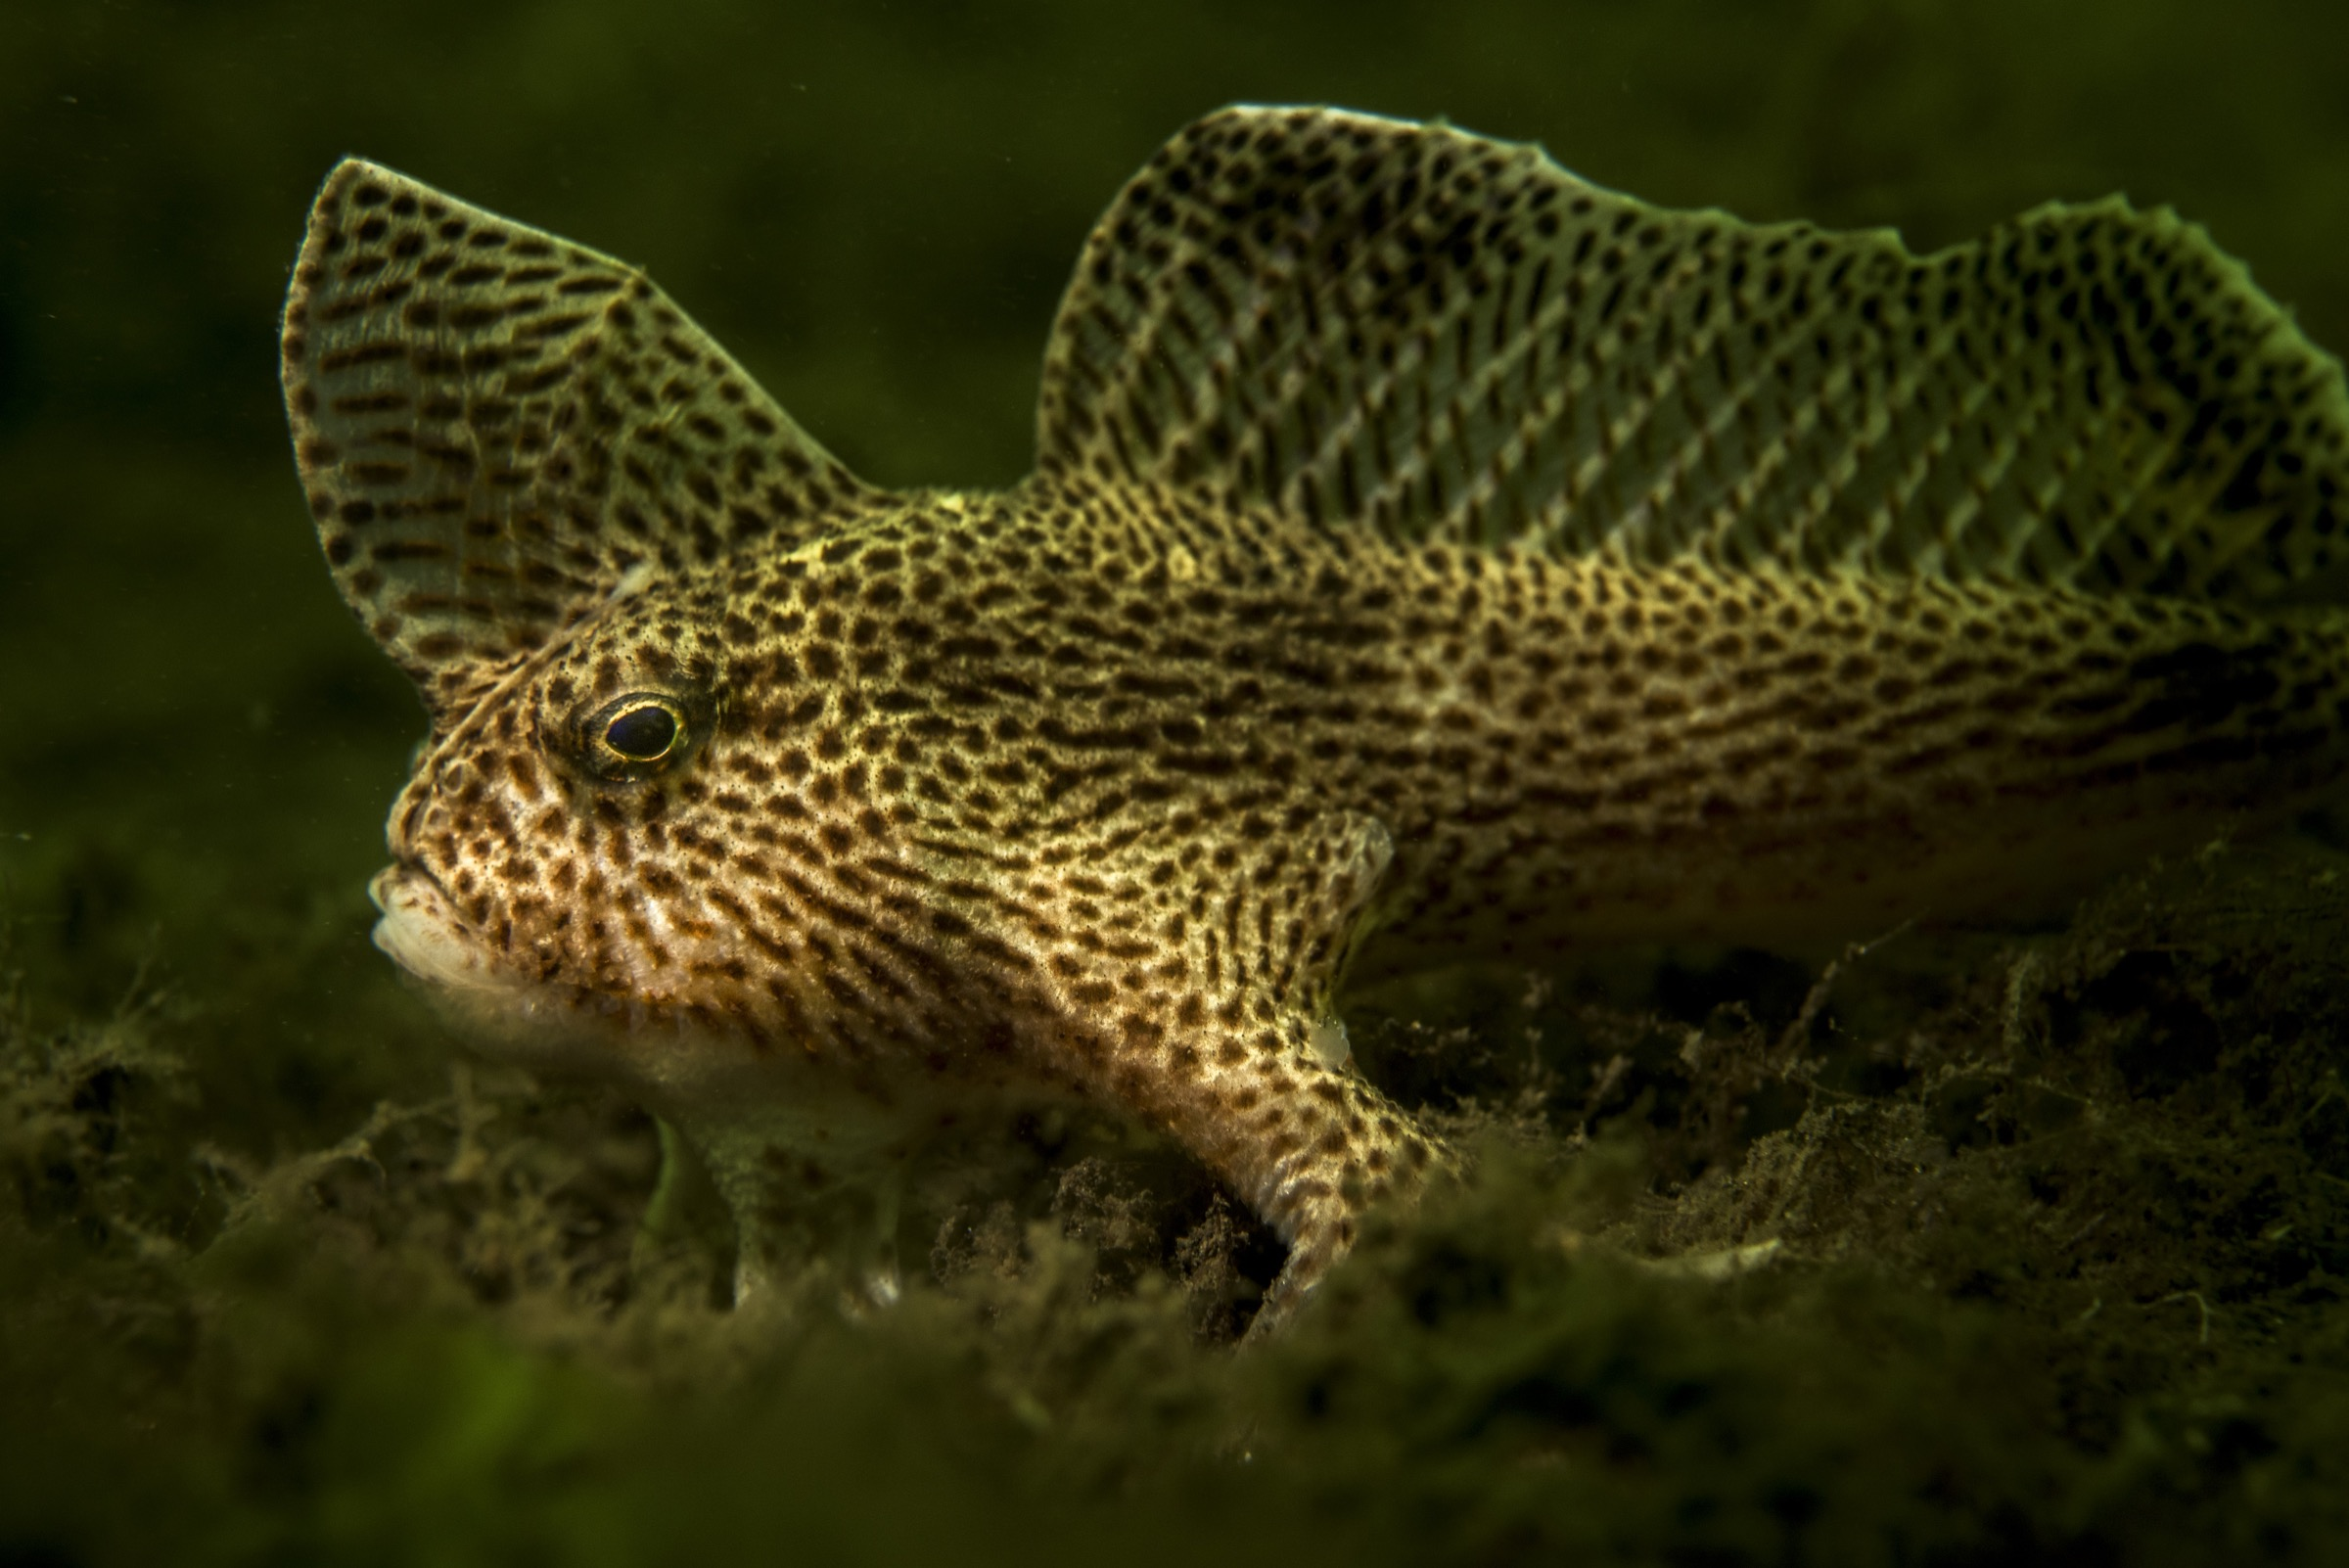 A spotted handfish (Brachionichthys hirsutus) clambers along the bottom in the Derwant River Estuary near Hobart, Tasmania.